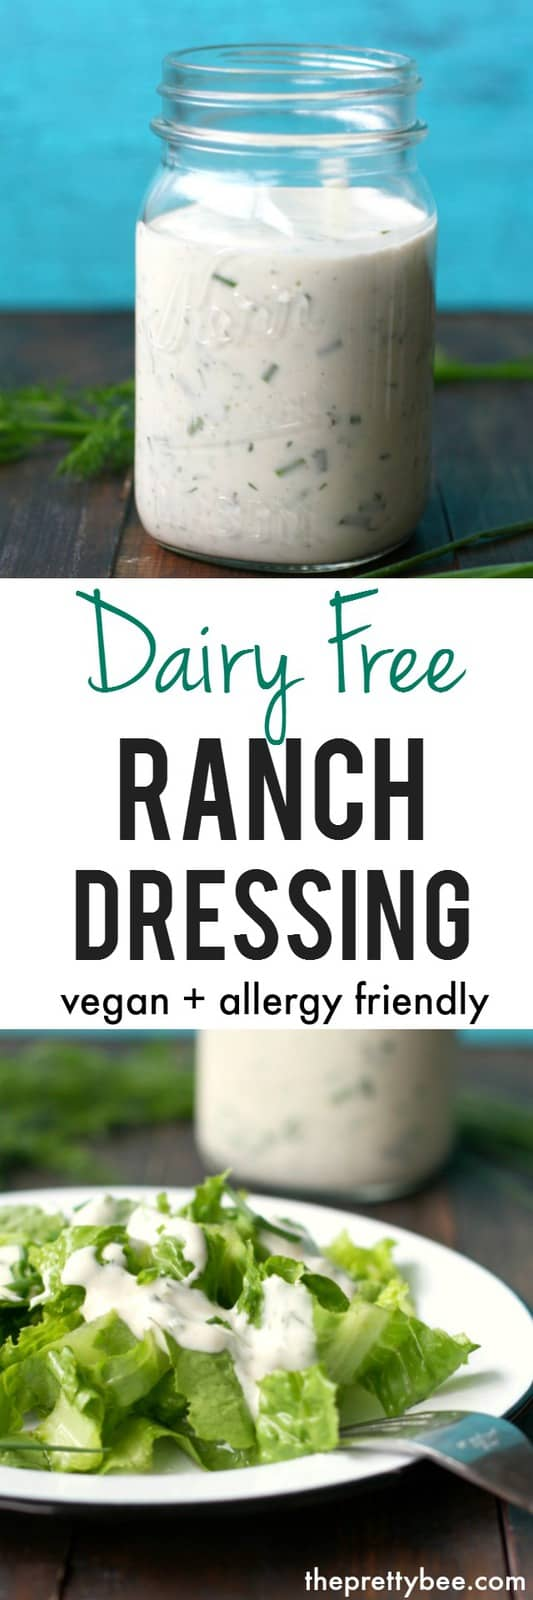 Homemade dairy free ranch dressing is perfect for topping salads or for dipping veggies! Creamy and delicious. #dairyfree #vegan #glutenfree